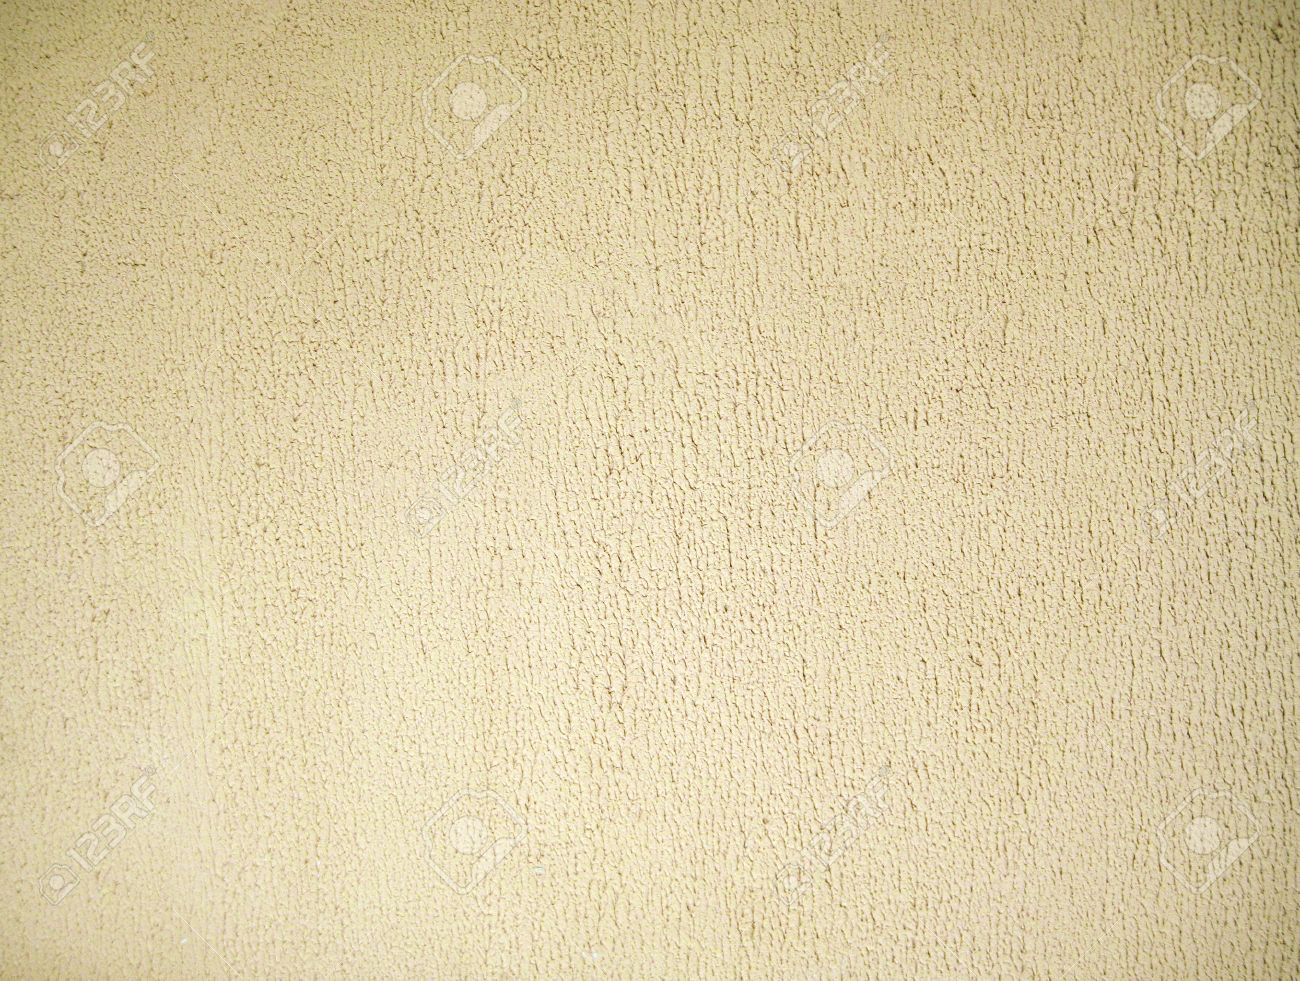 Stucco Color Of Beige Plaster Wall Background Or Texture Facture ...